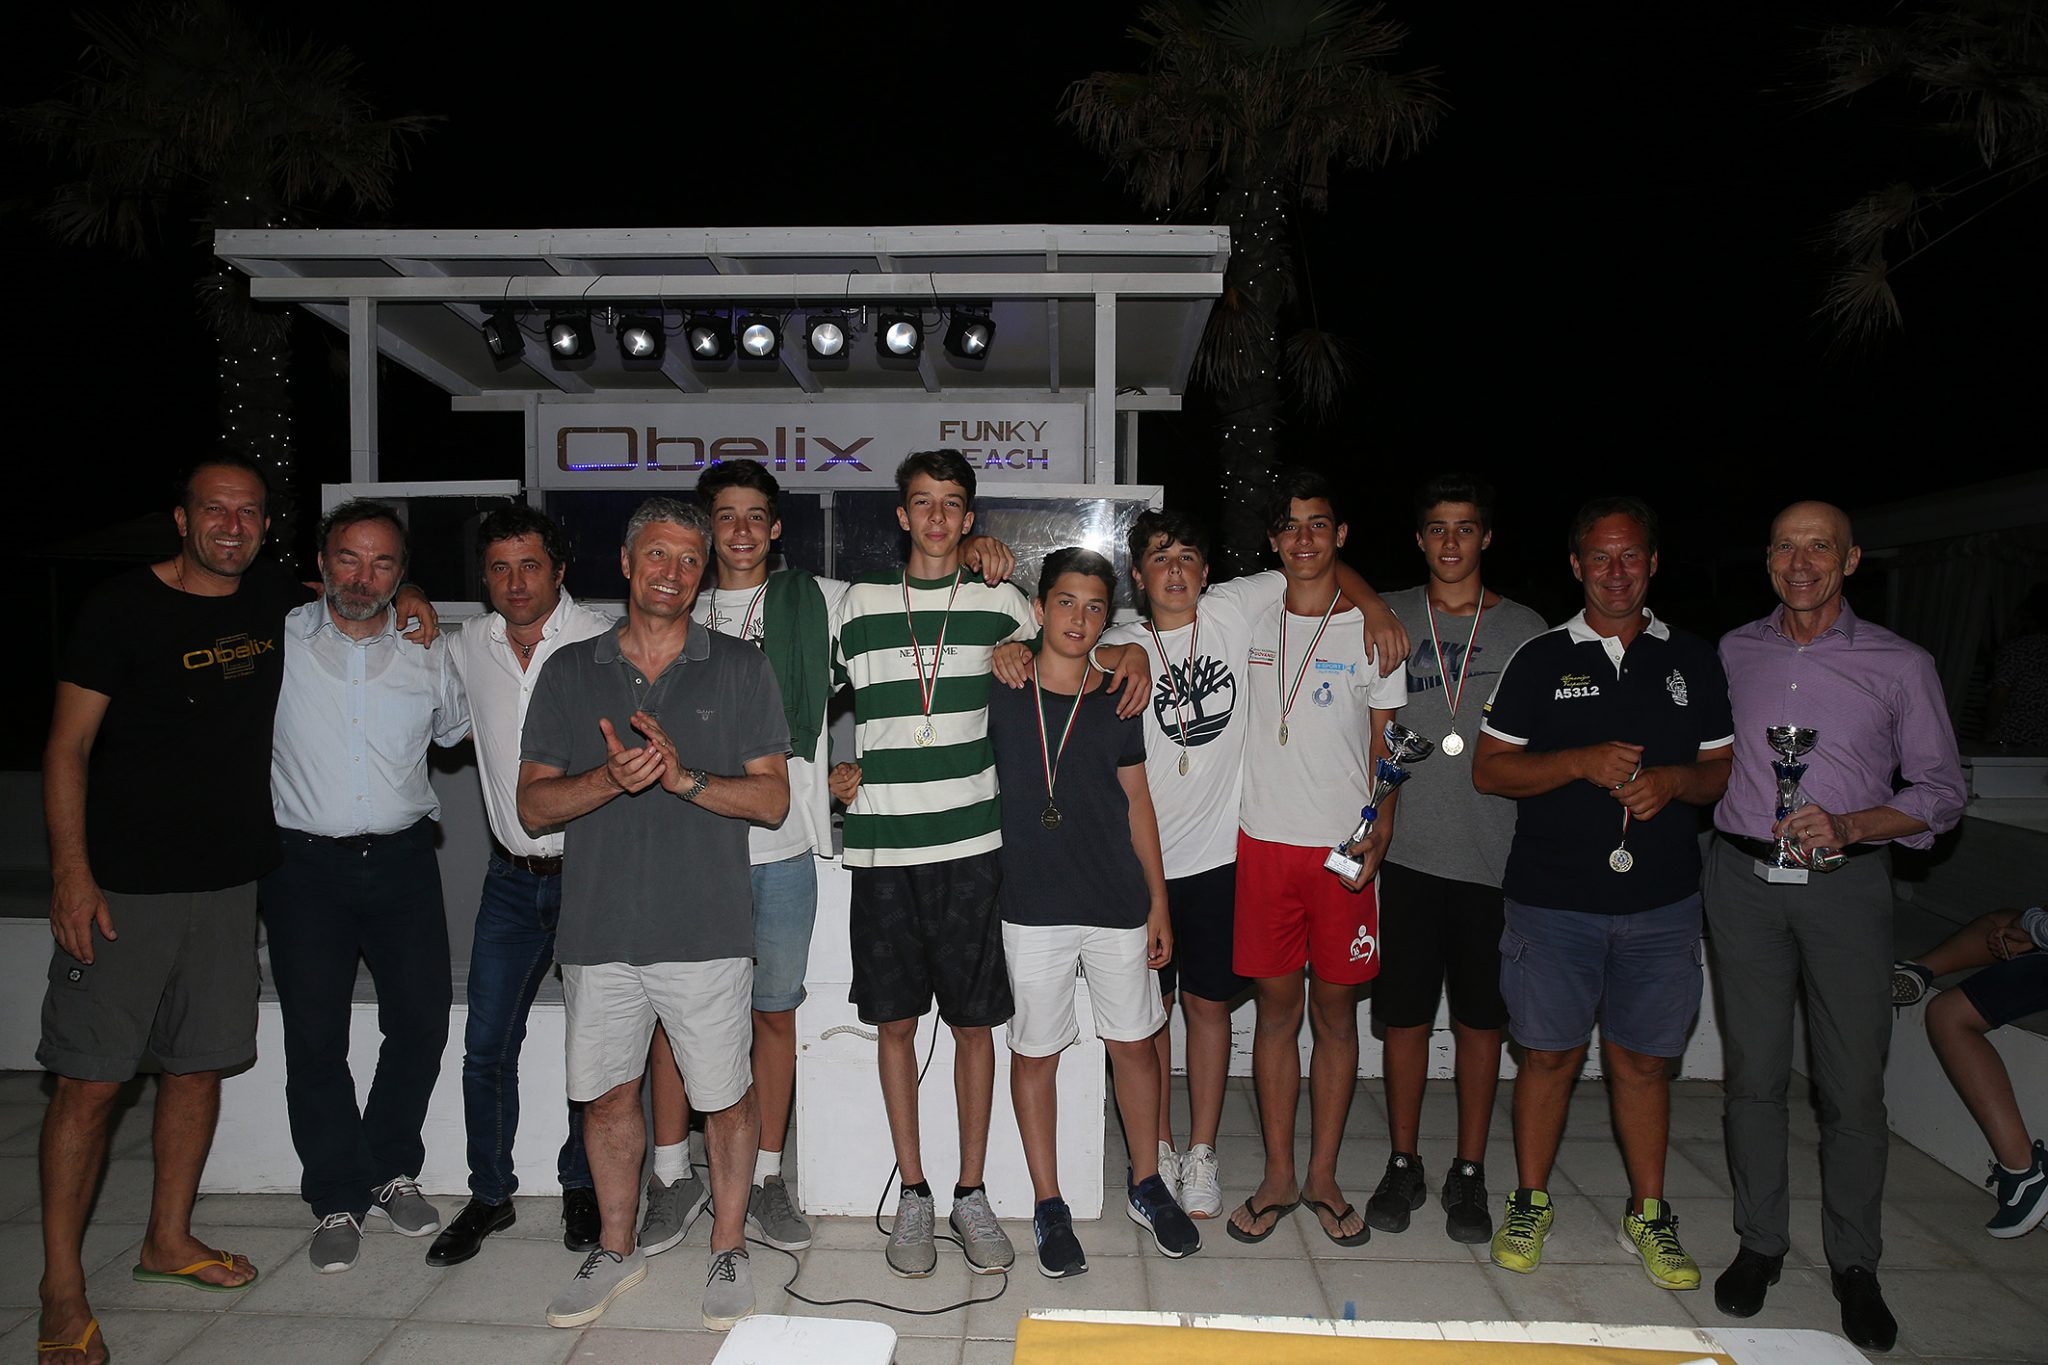 Ravenna 11 06 2018 volley porto robur costa ravenna g for Muro robur